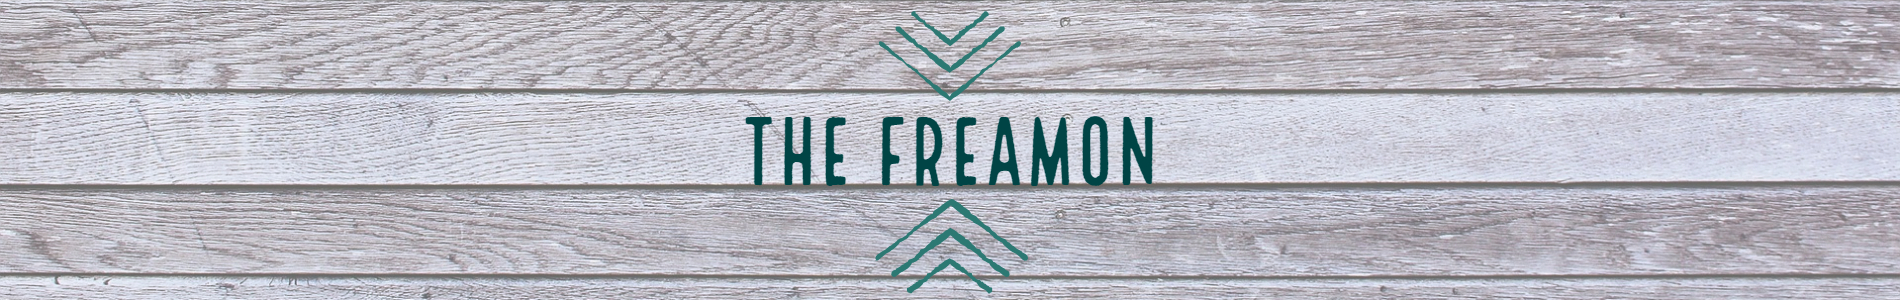 The Freamon - Premium | Real Estate Sales Representative